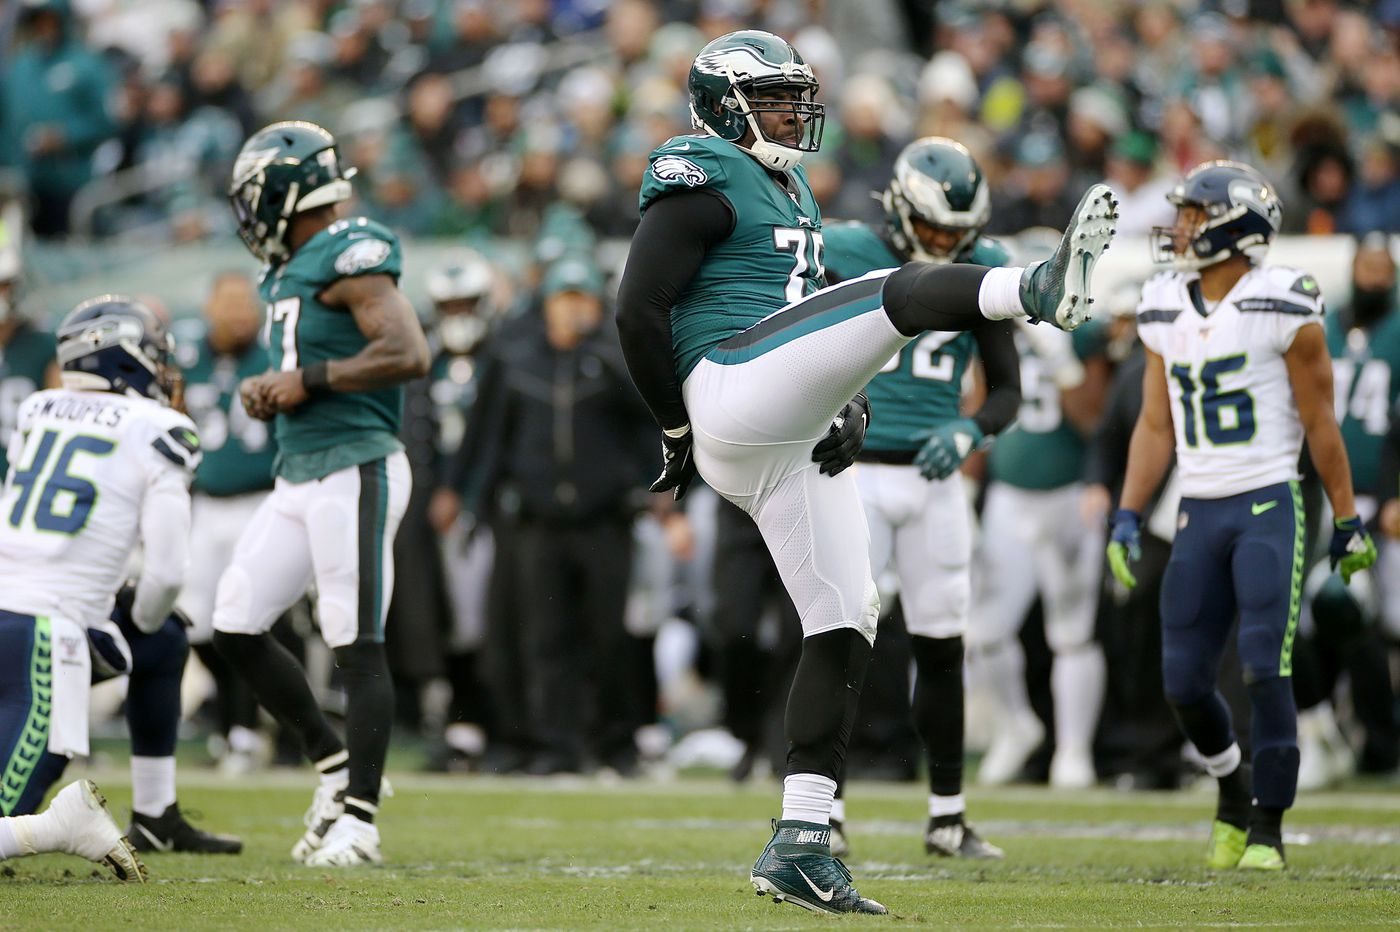 Eagles bring back 32-year-old Vinny Curry on a one-year deal